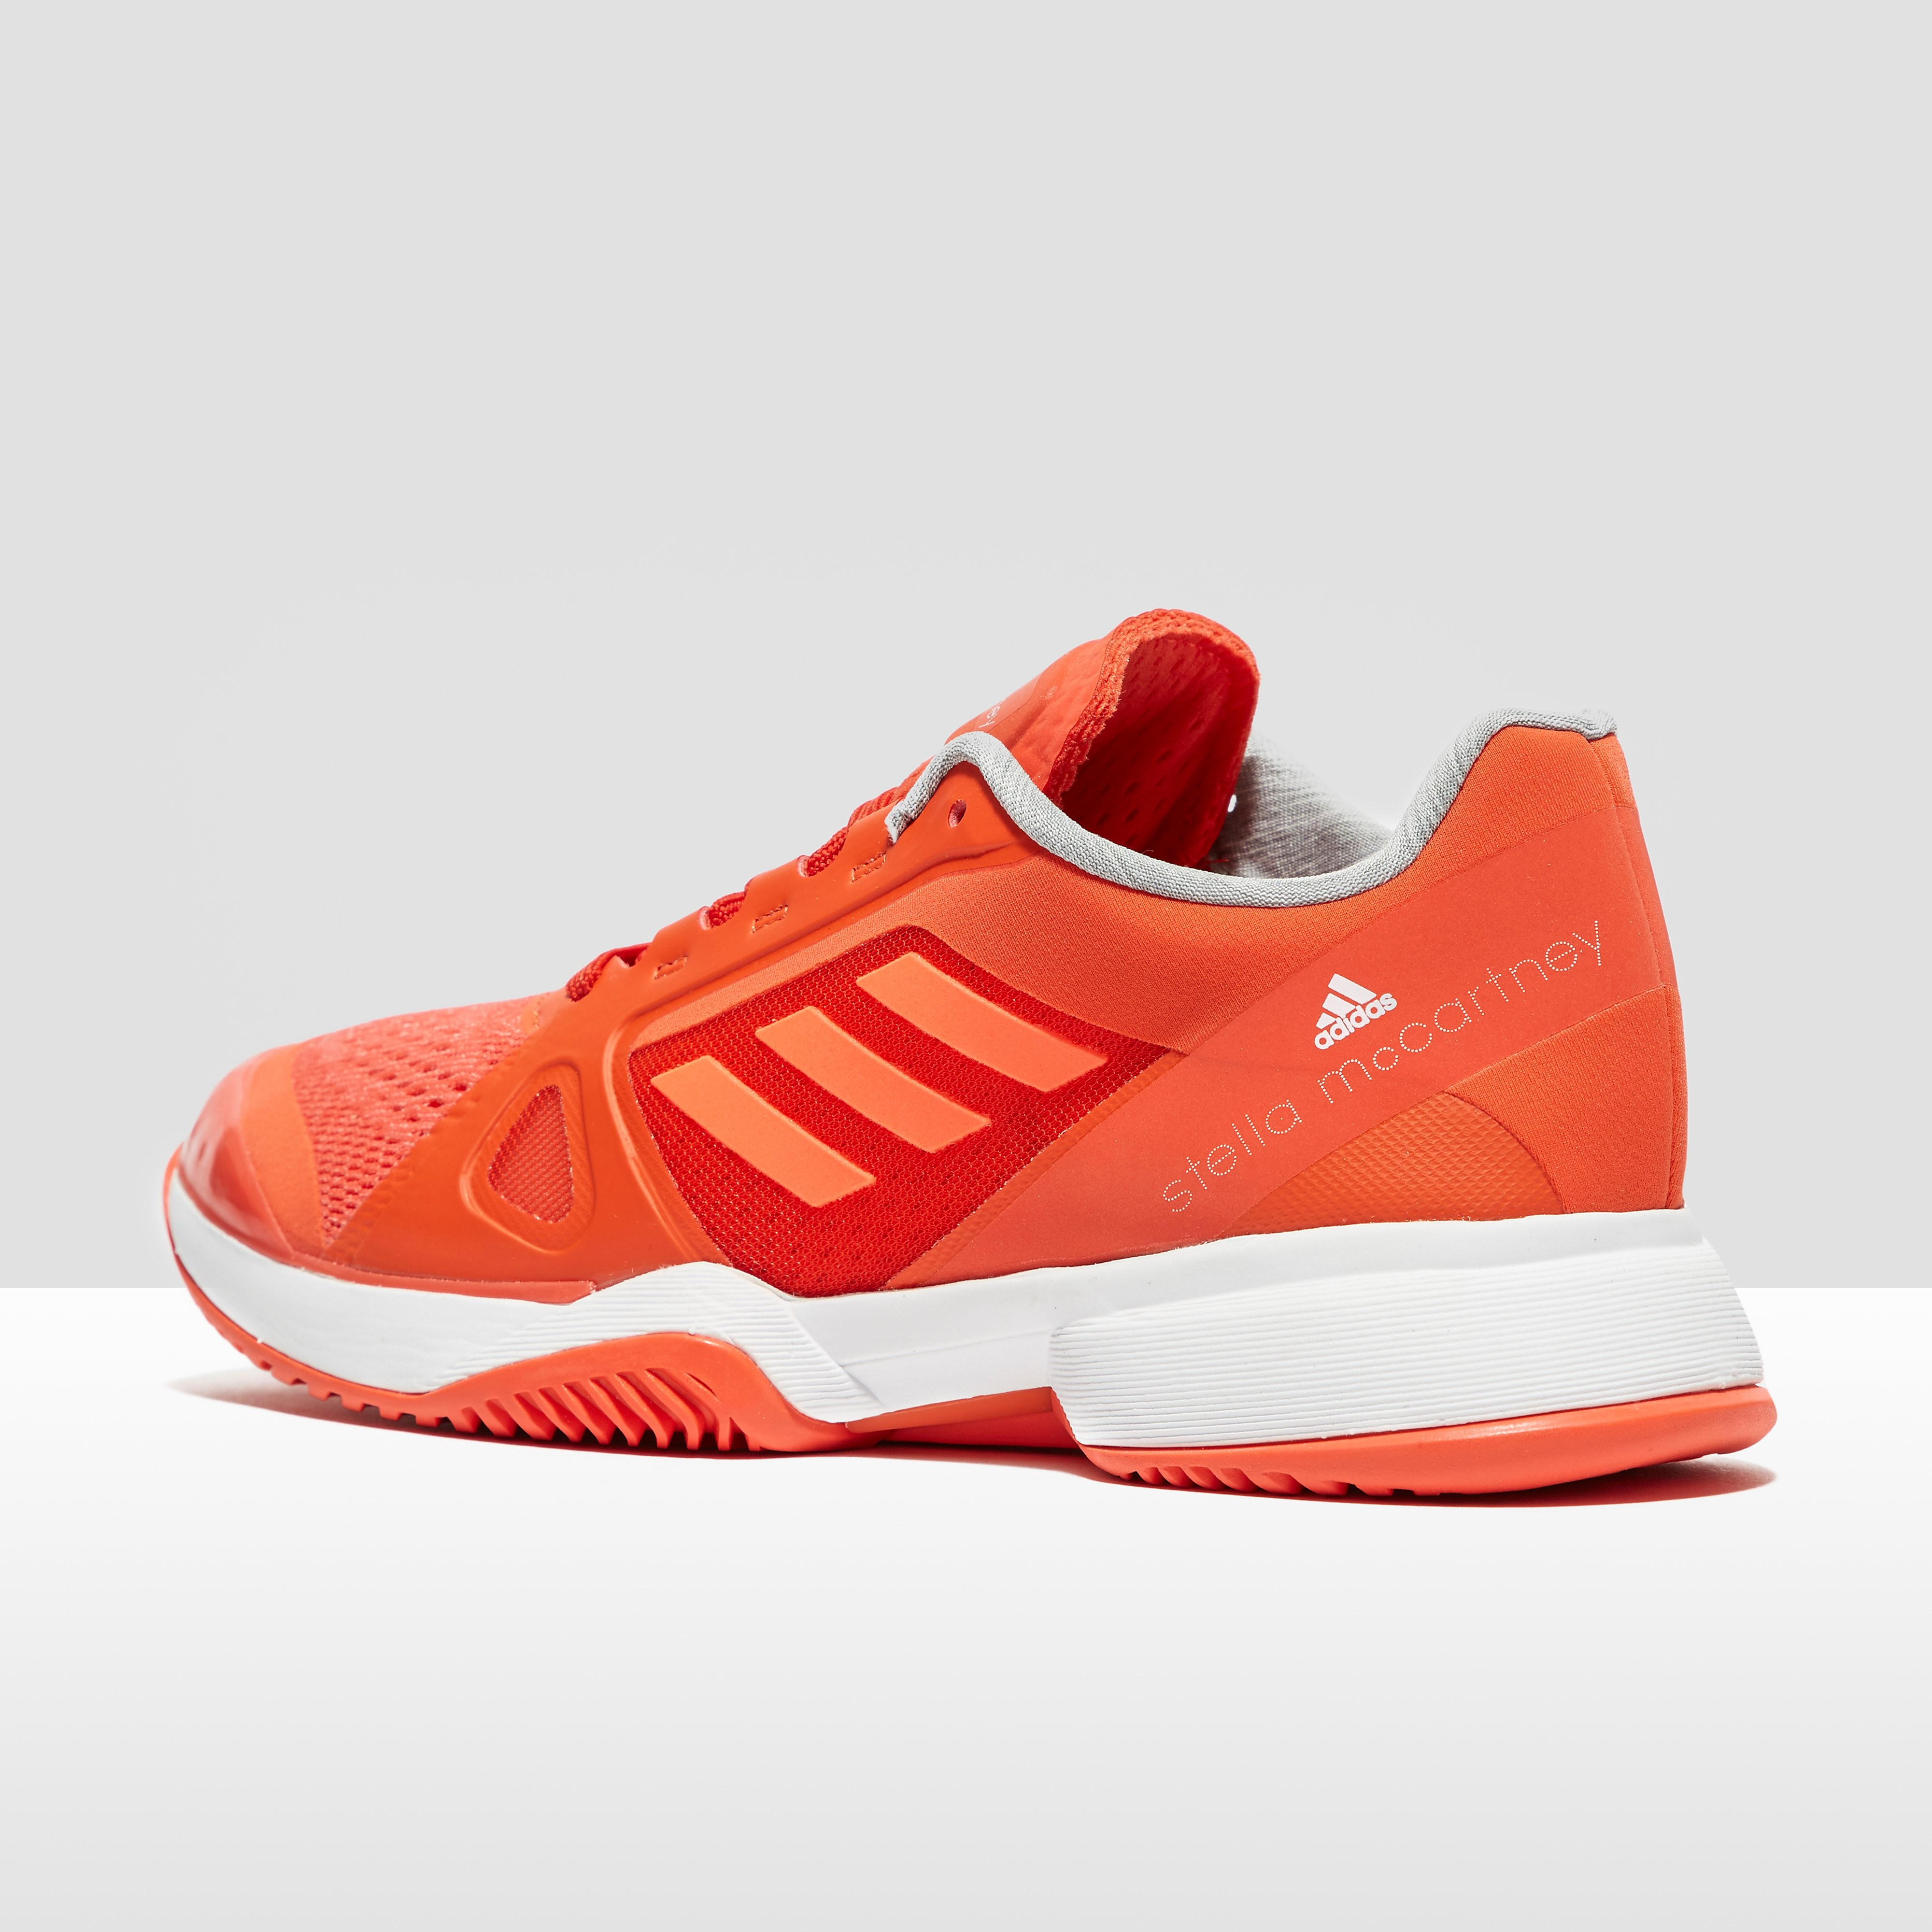 adidas Stella McCartney Barricade 2017 Women's Tennis Shoes